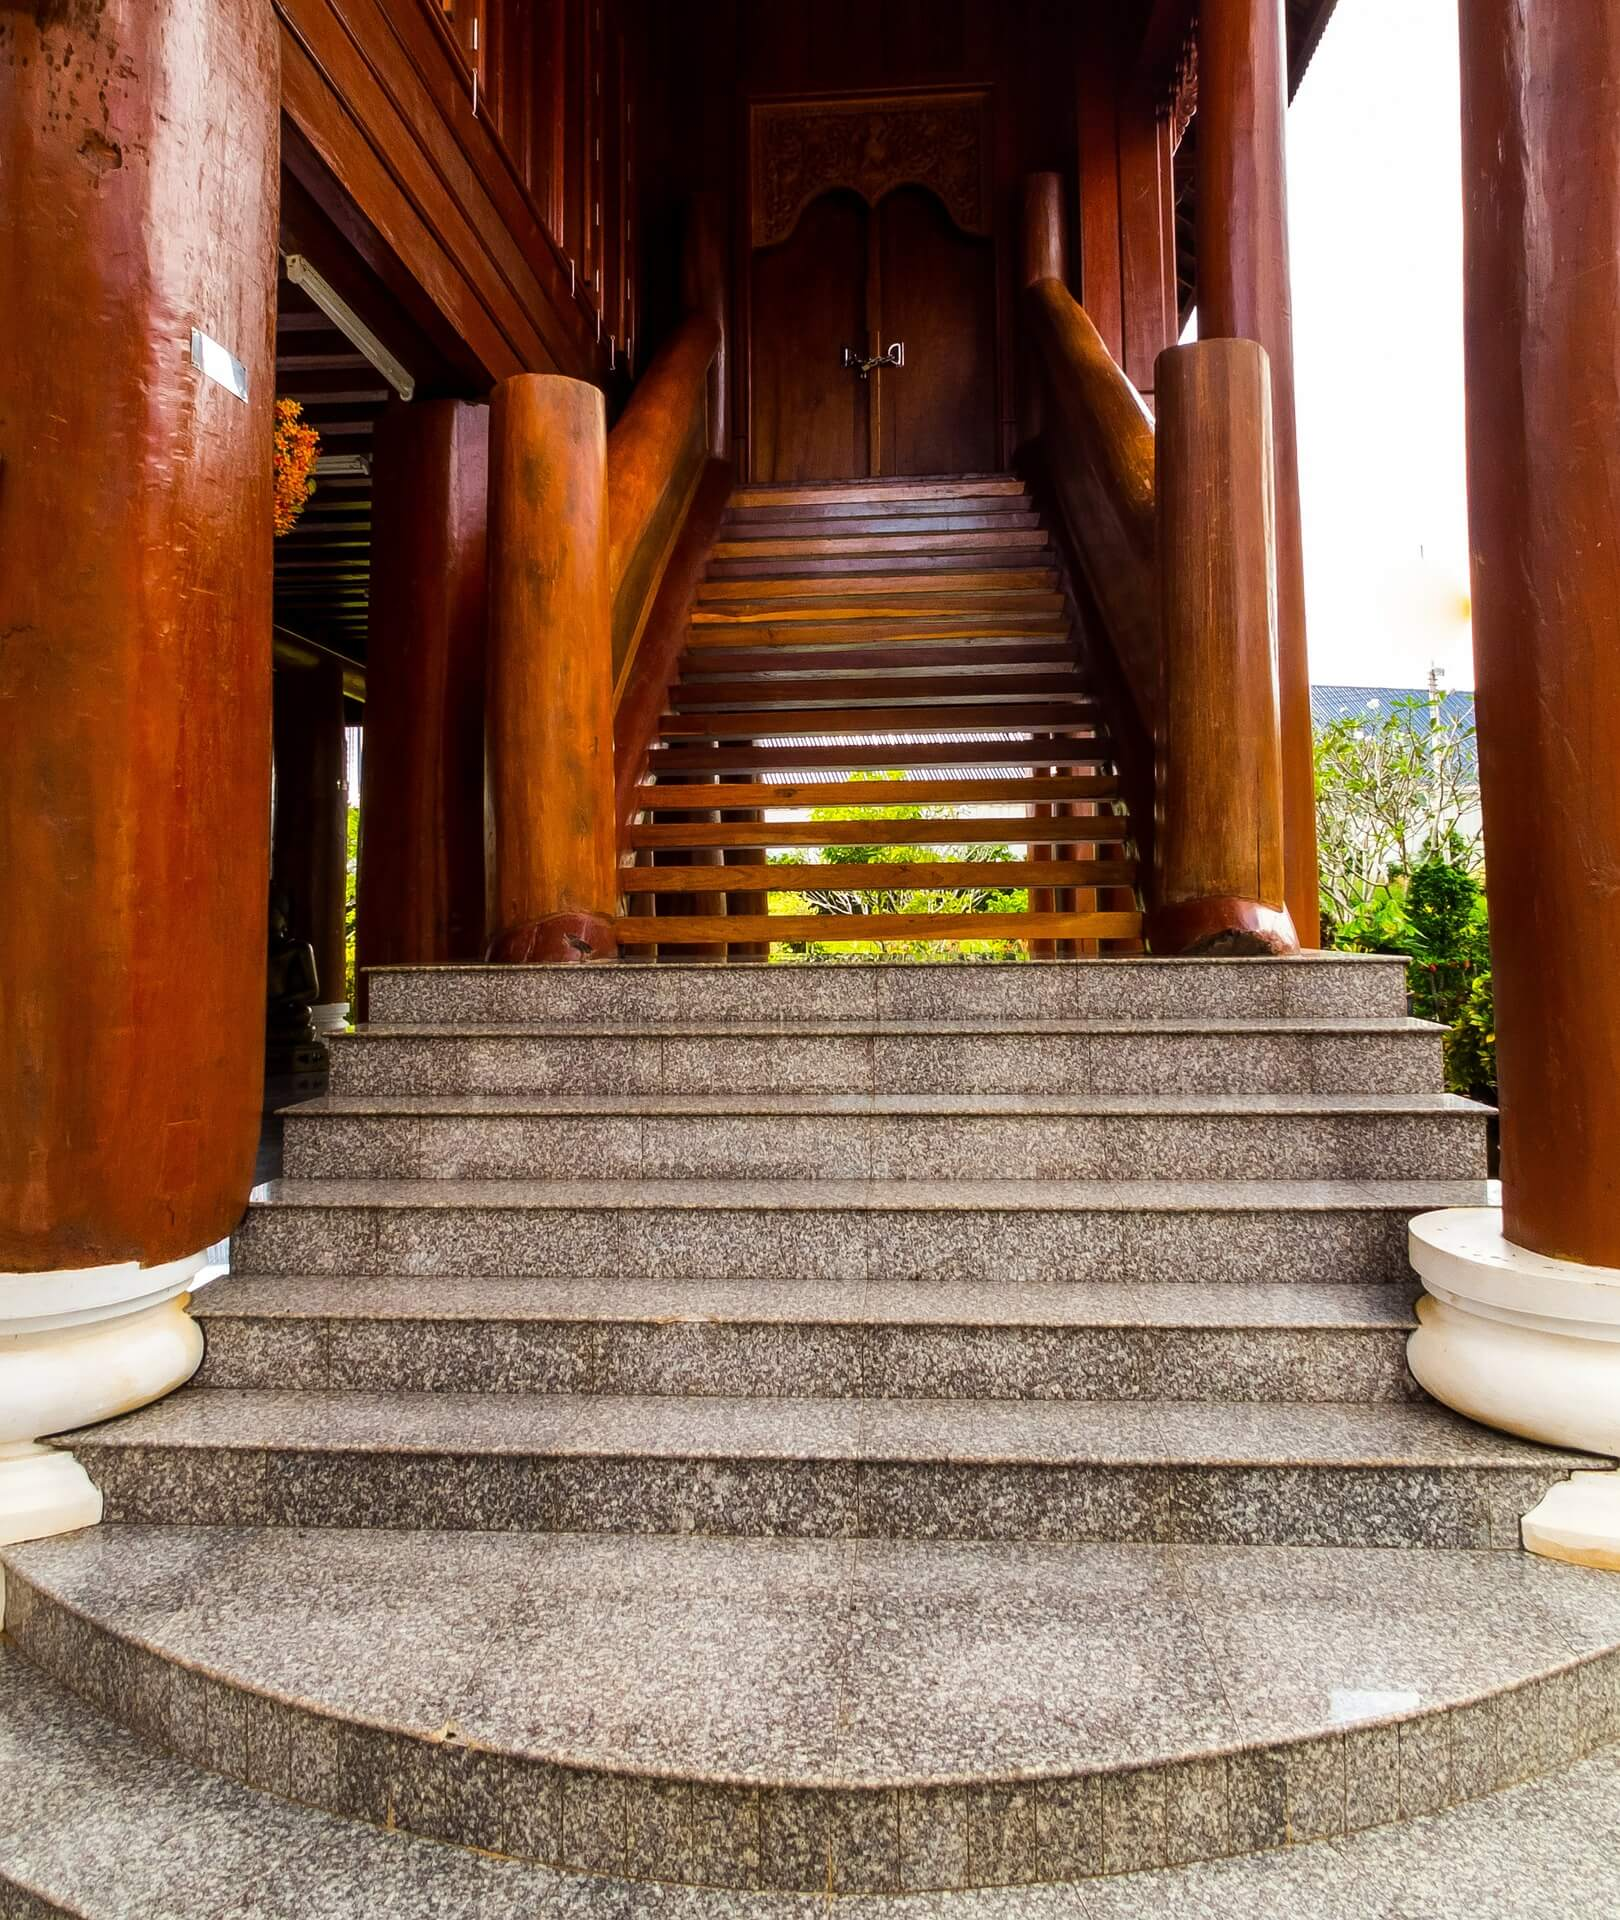 staircase-221105_1920